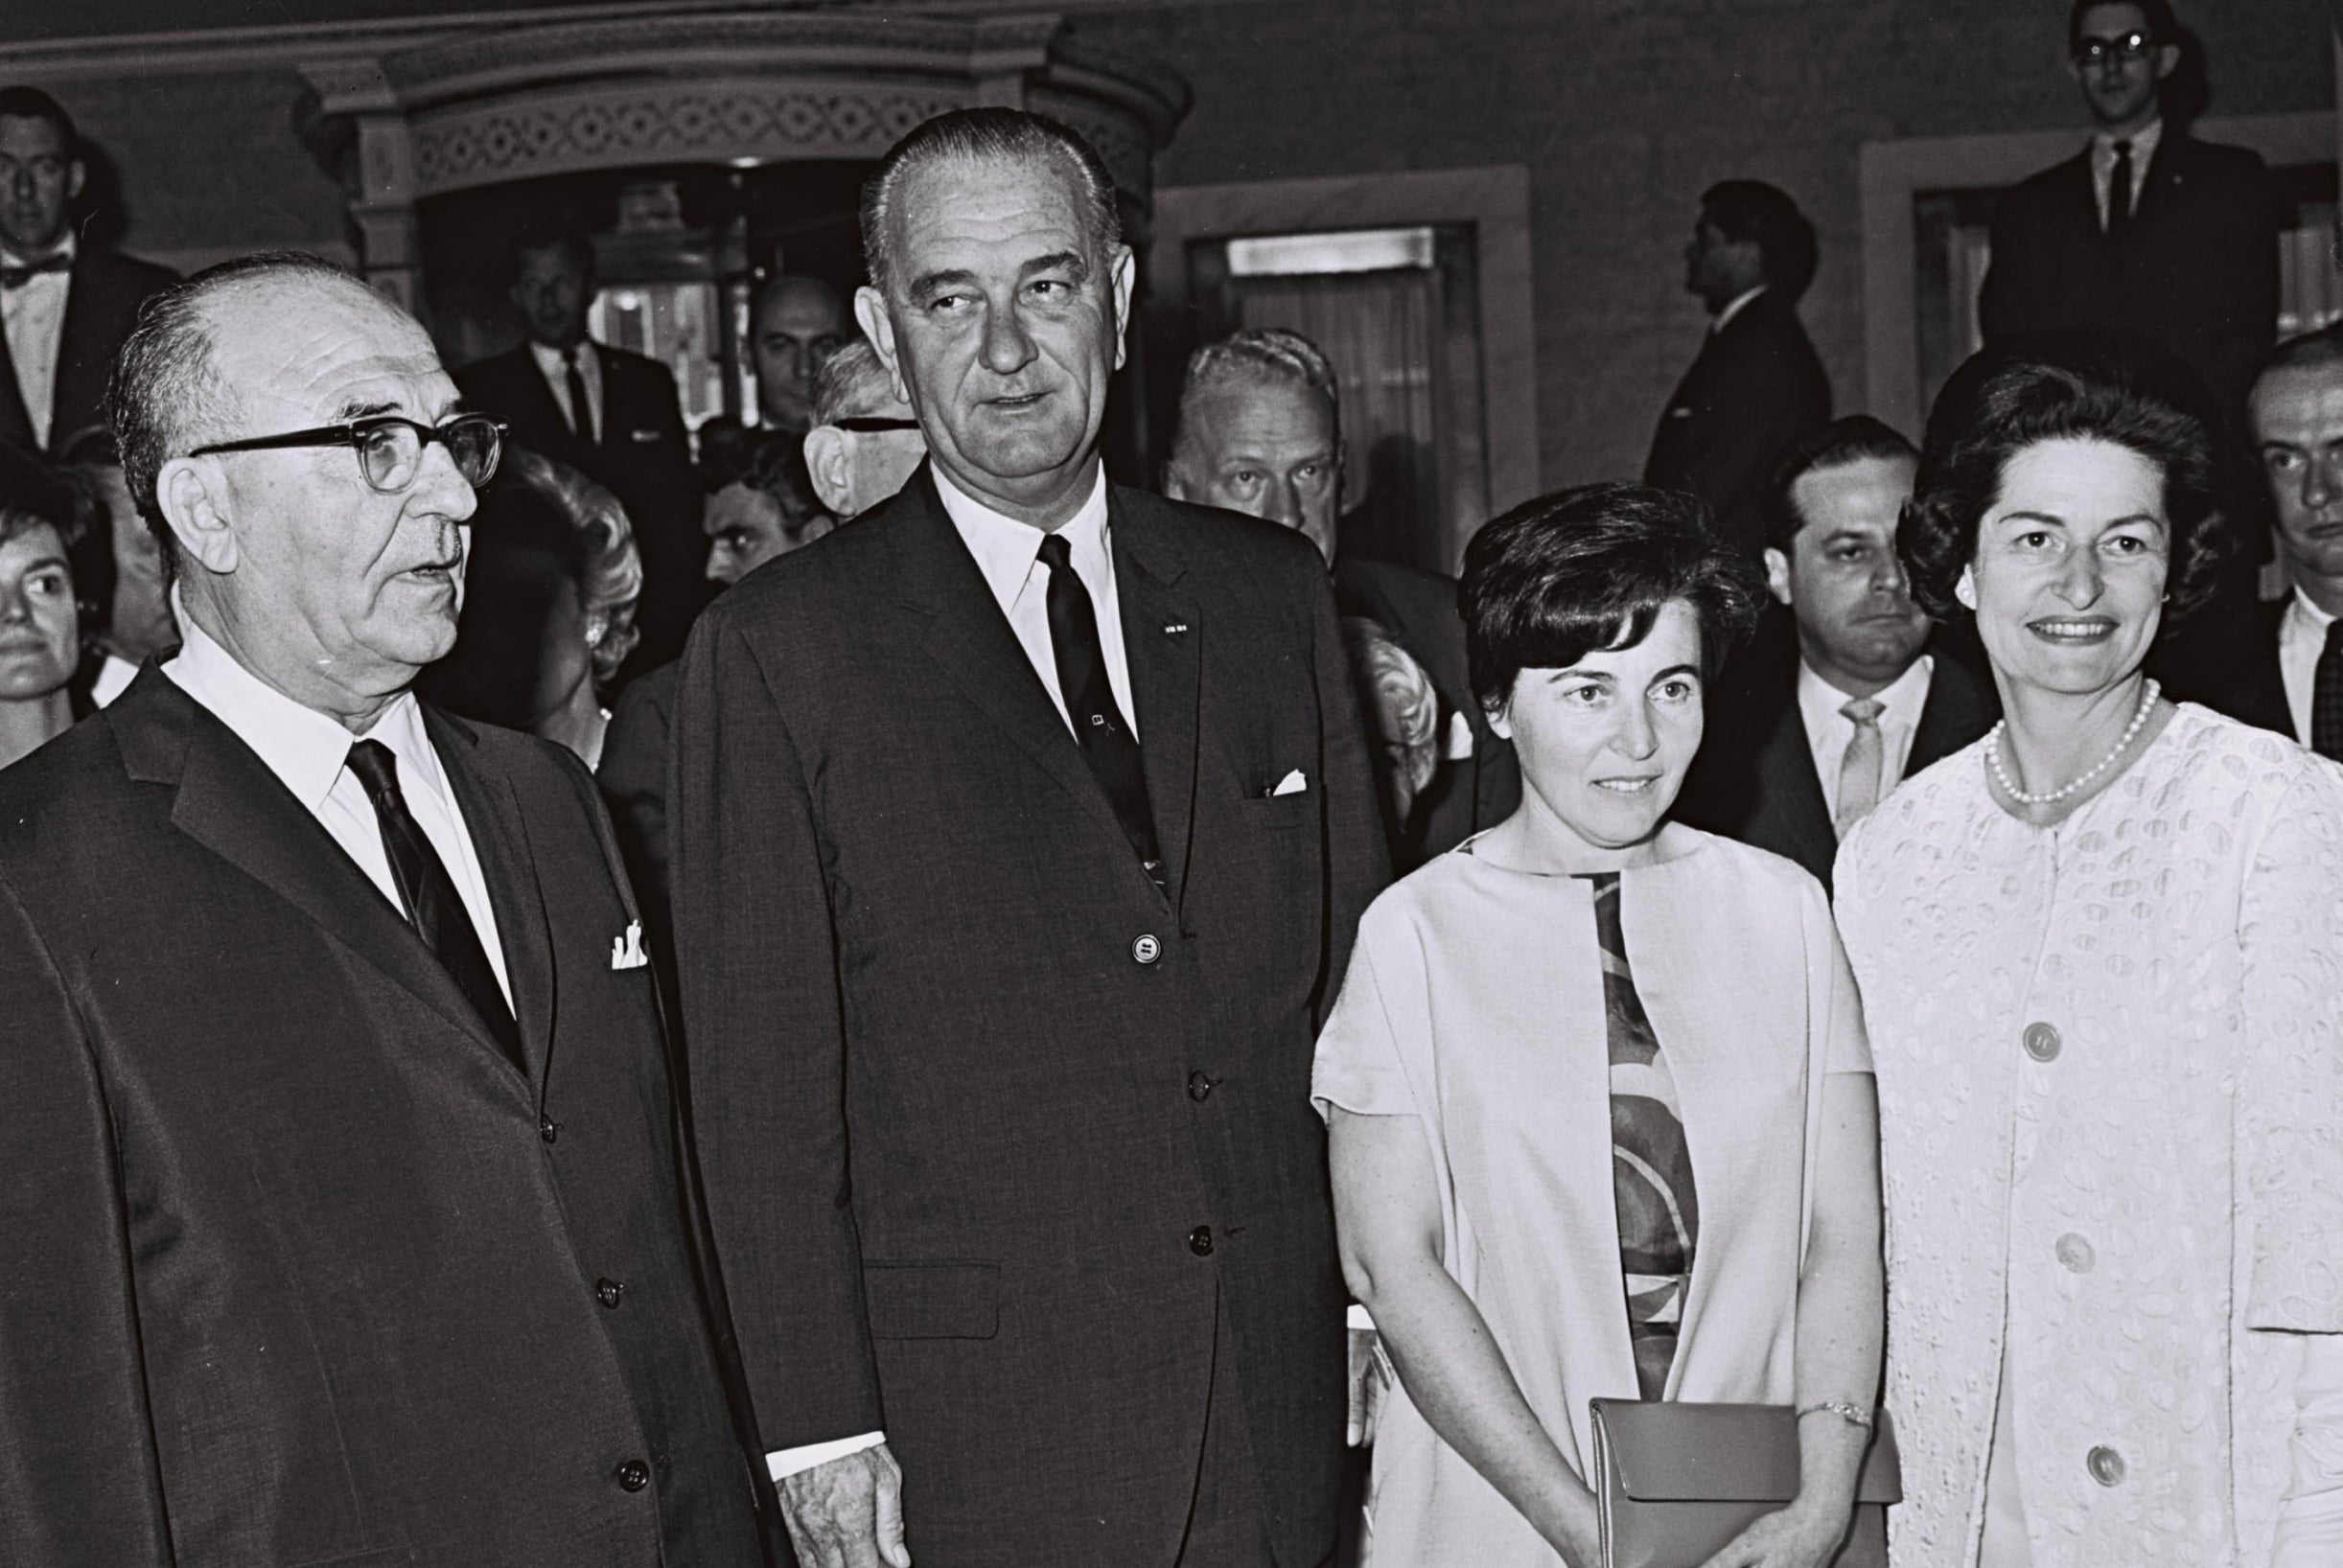 Israeli Prime Minister Levi Eshkol, left, U.S. President Lyndon B. Johnson and their wives at a reception in Washington, June 1964.